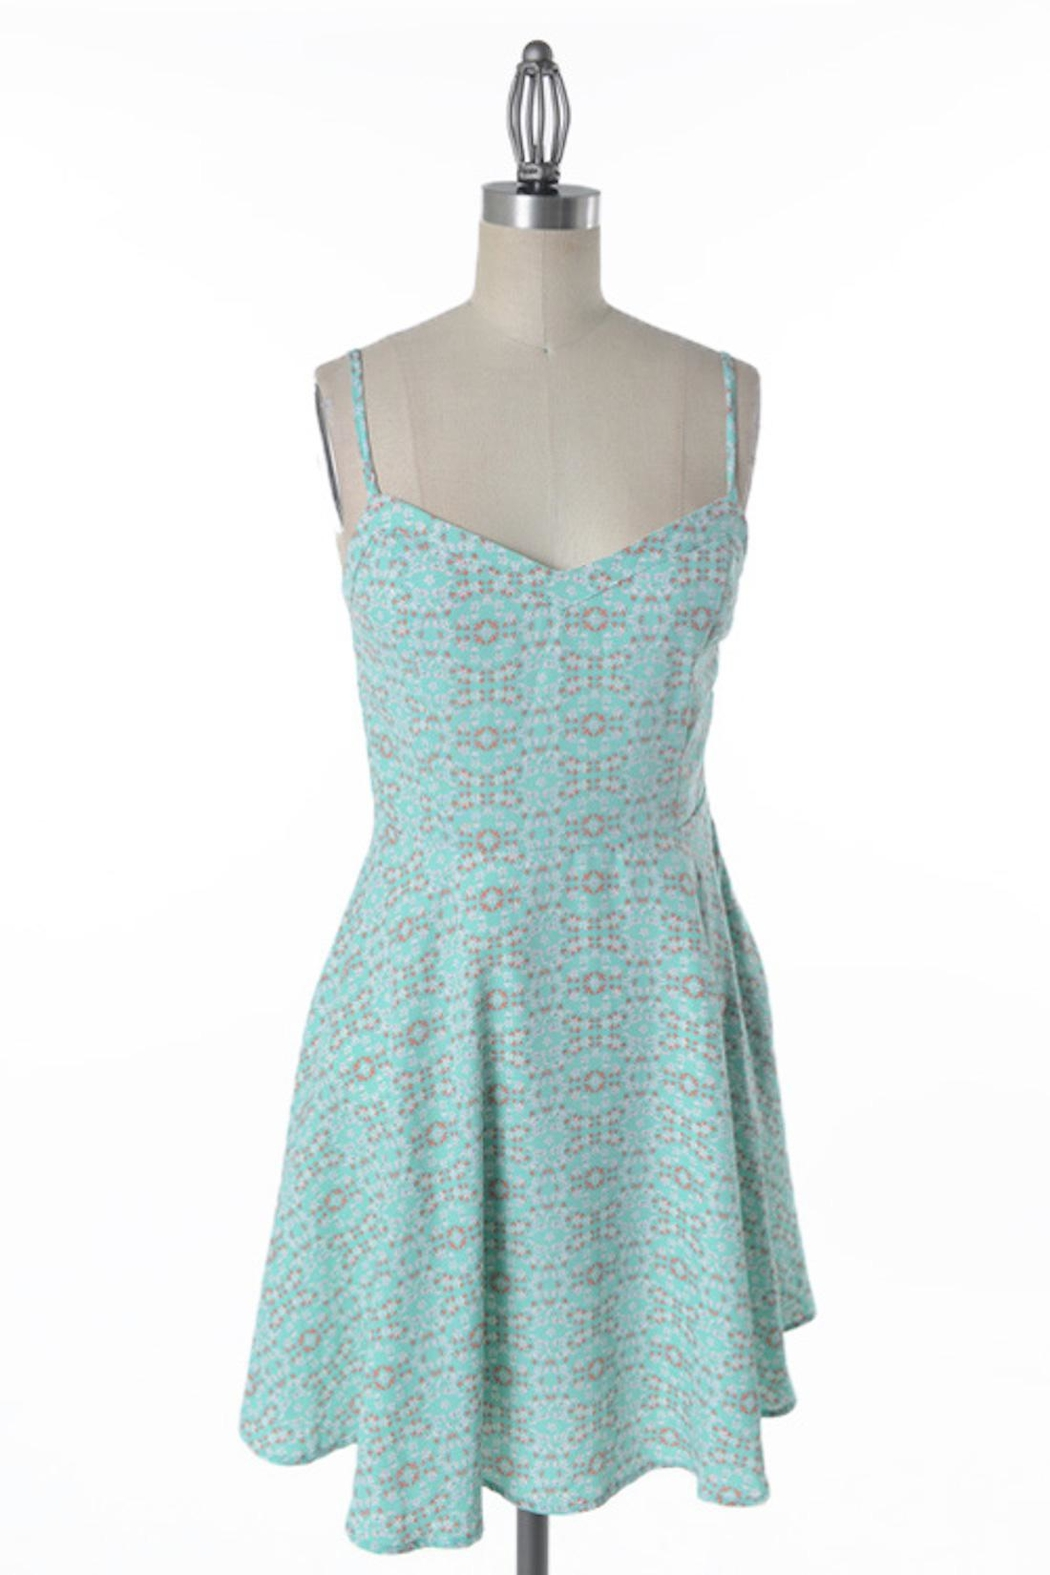 Comme Toi Minty Floral Dress - Main Image